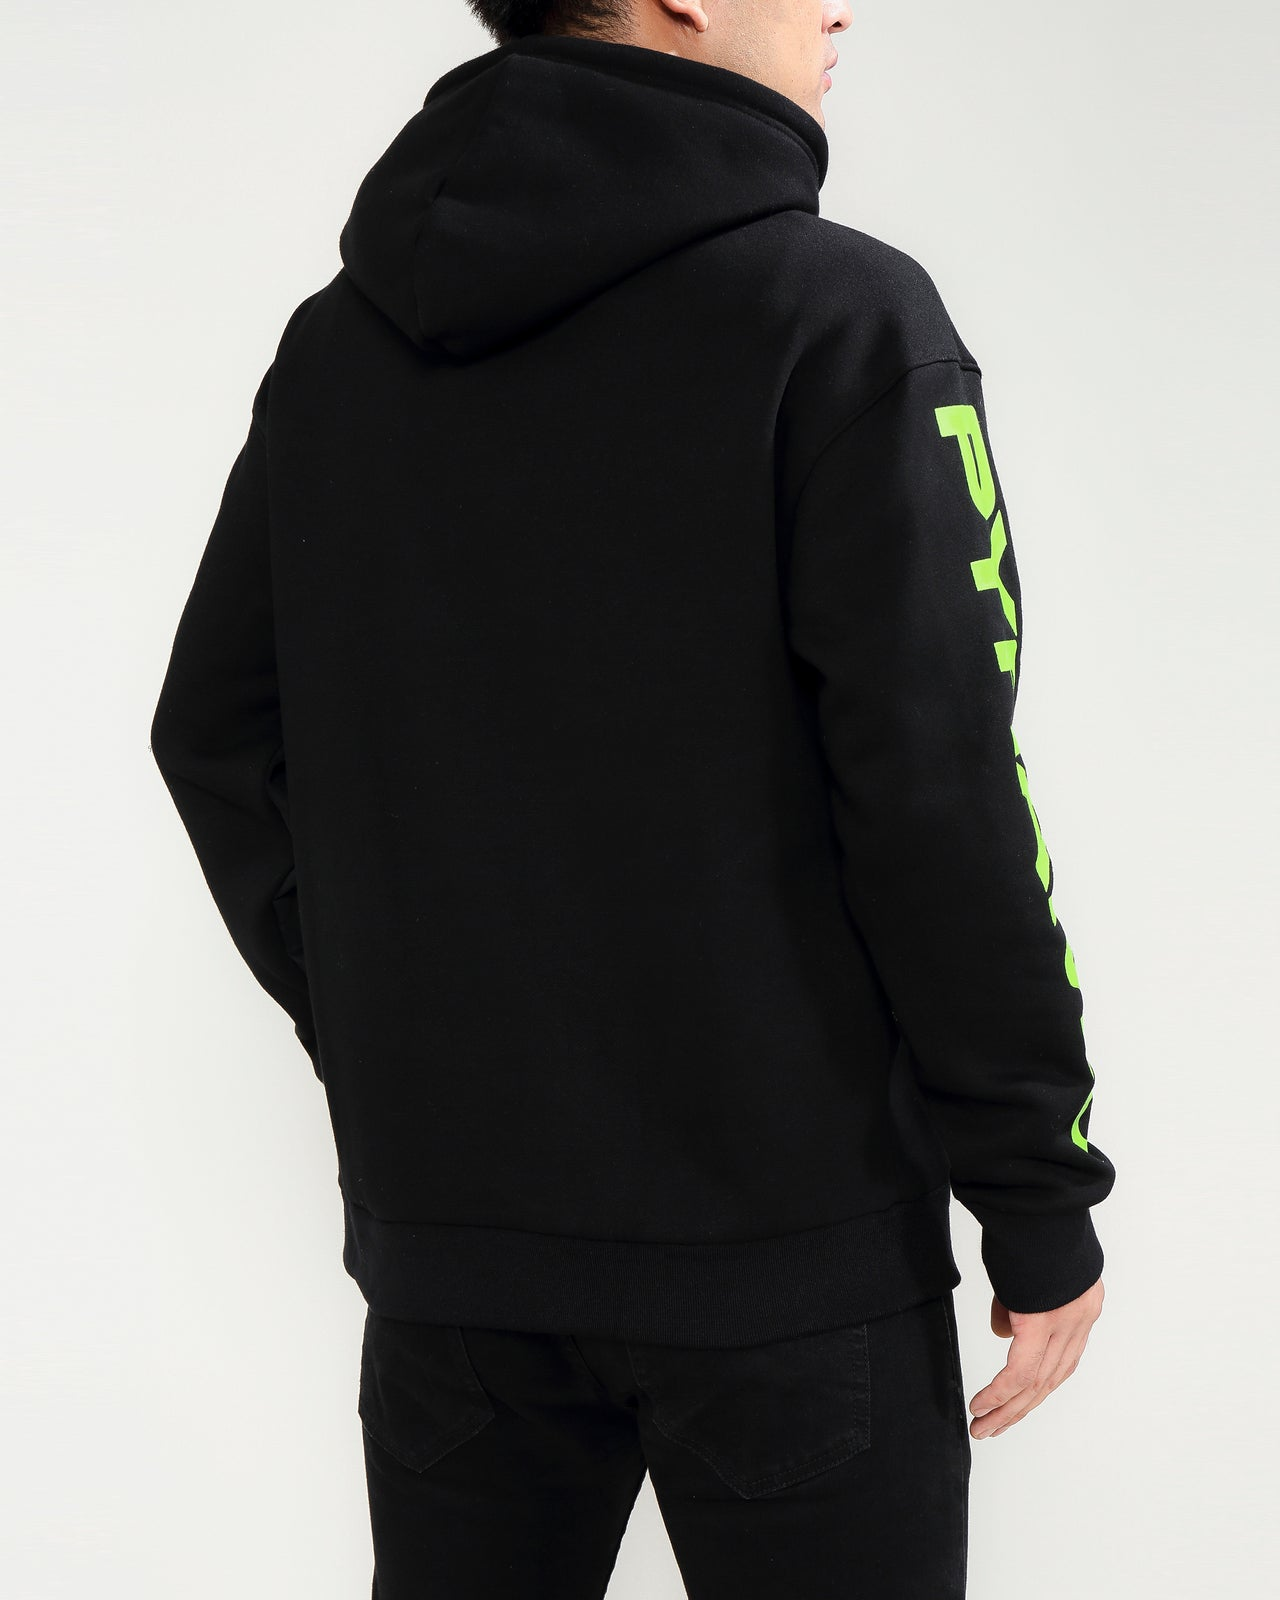 TOTAL COVERAGE LOGO HOODY-COLOR: BLACK